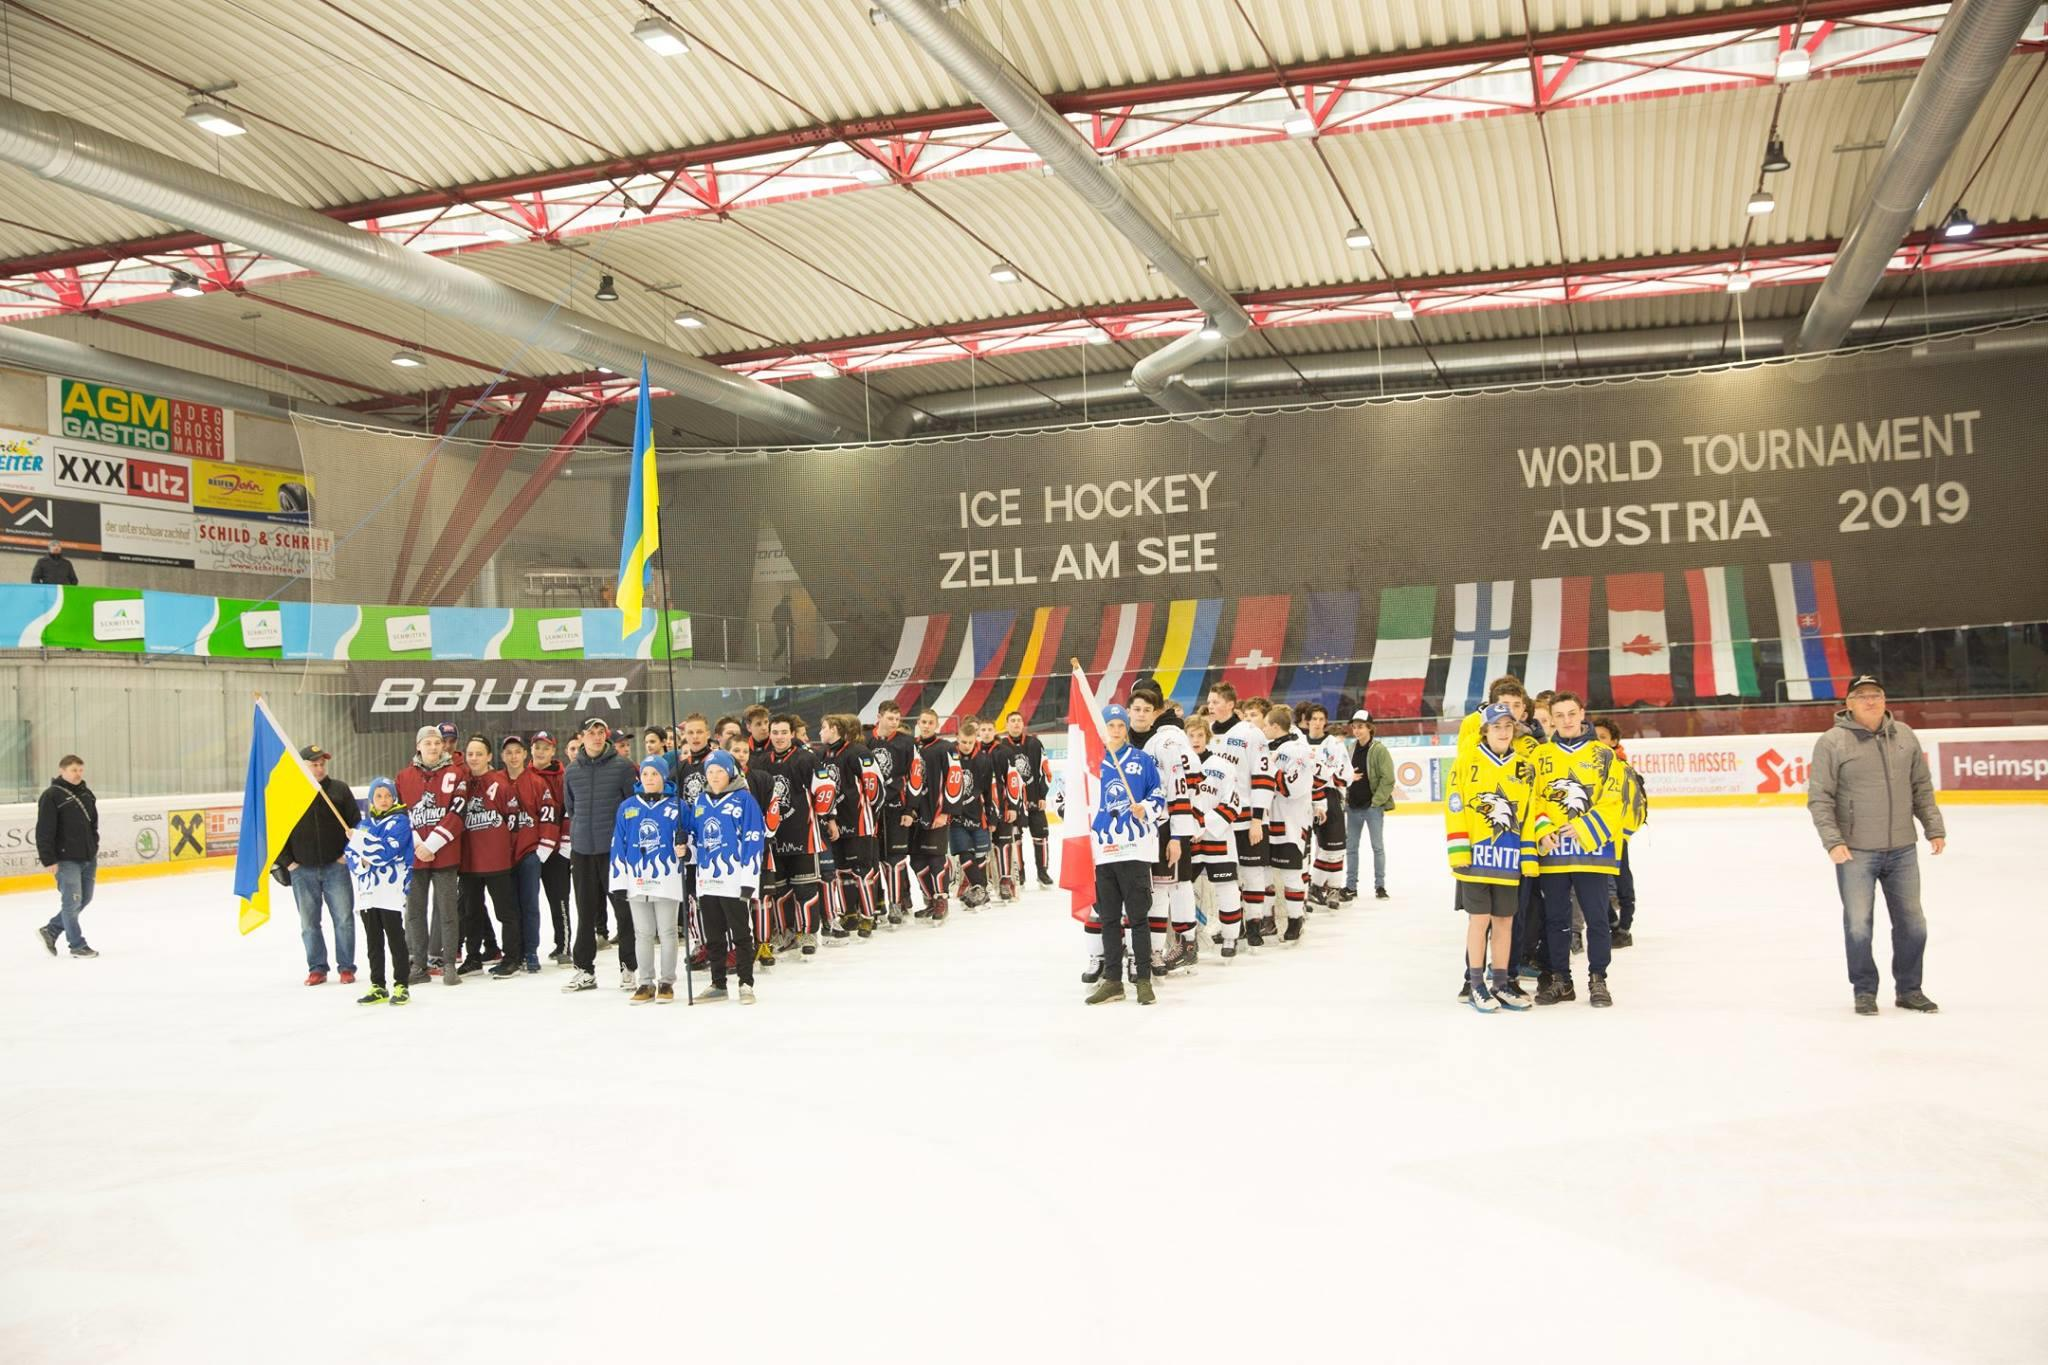 Icehockey World Tournament 2019 - 12/04/2020